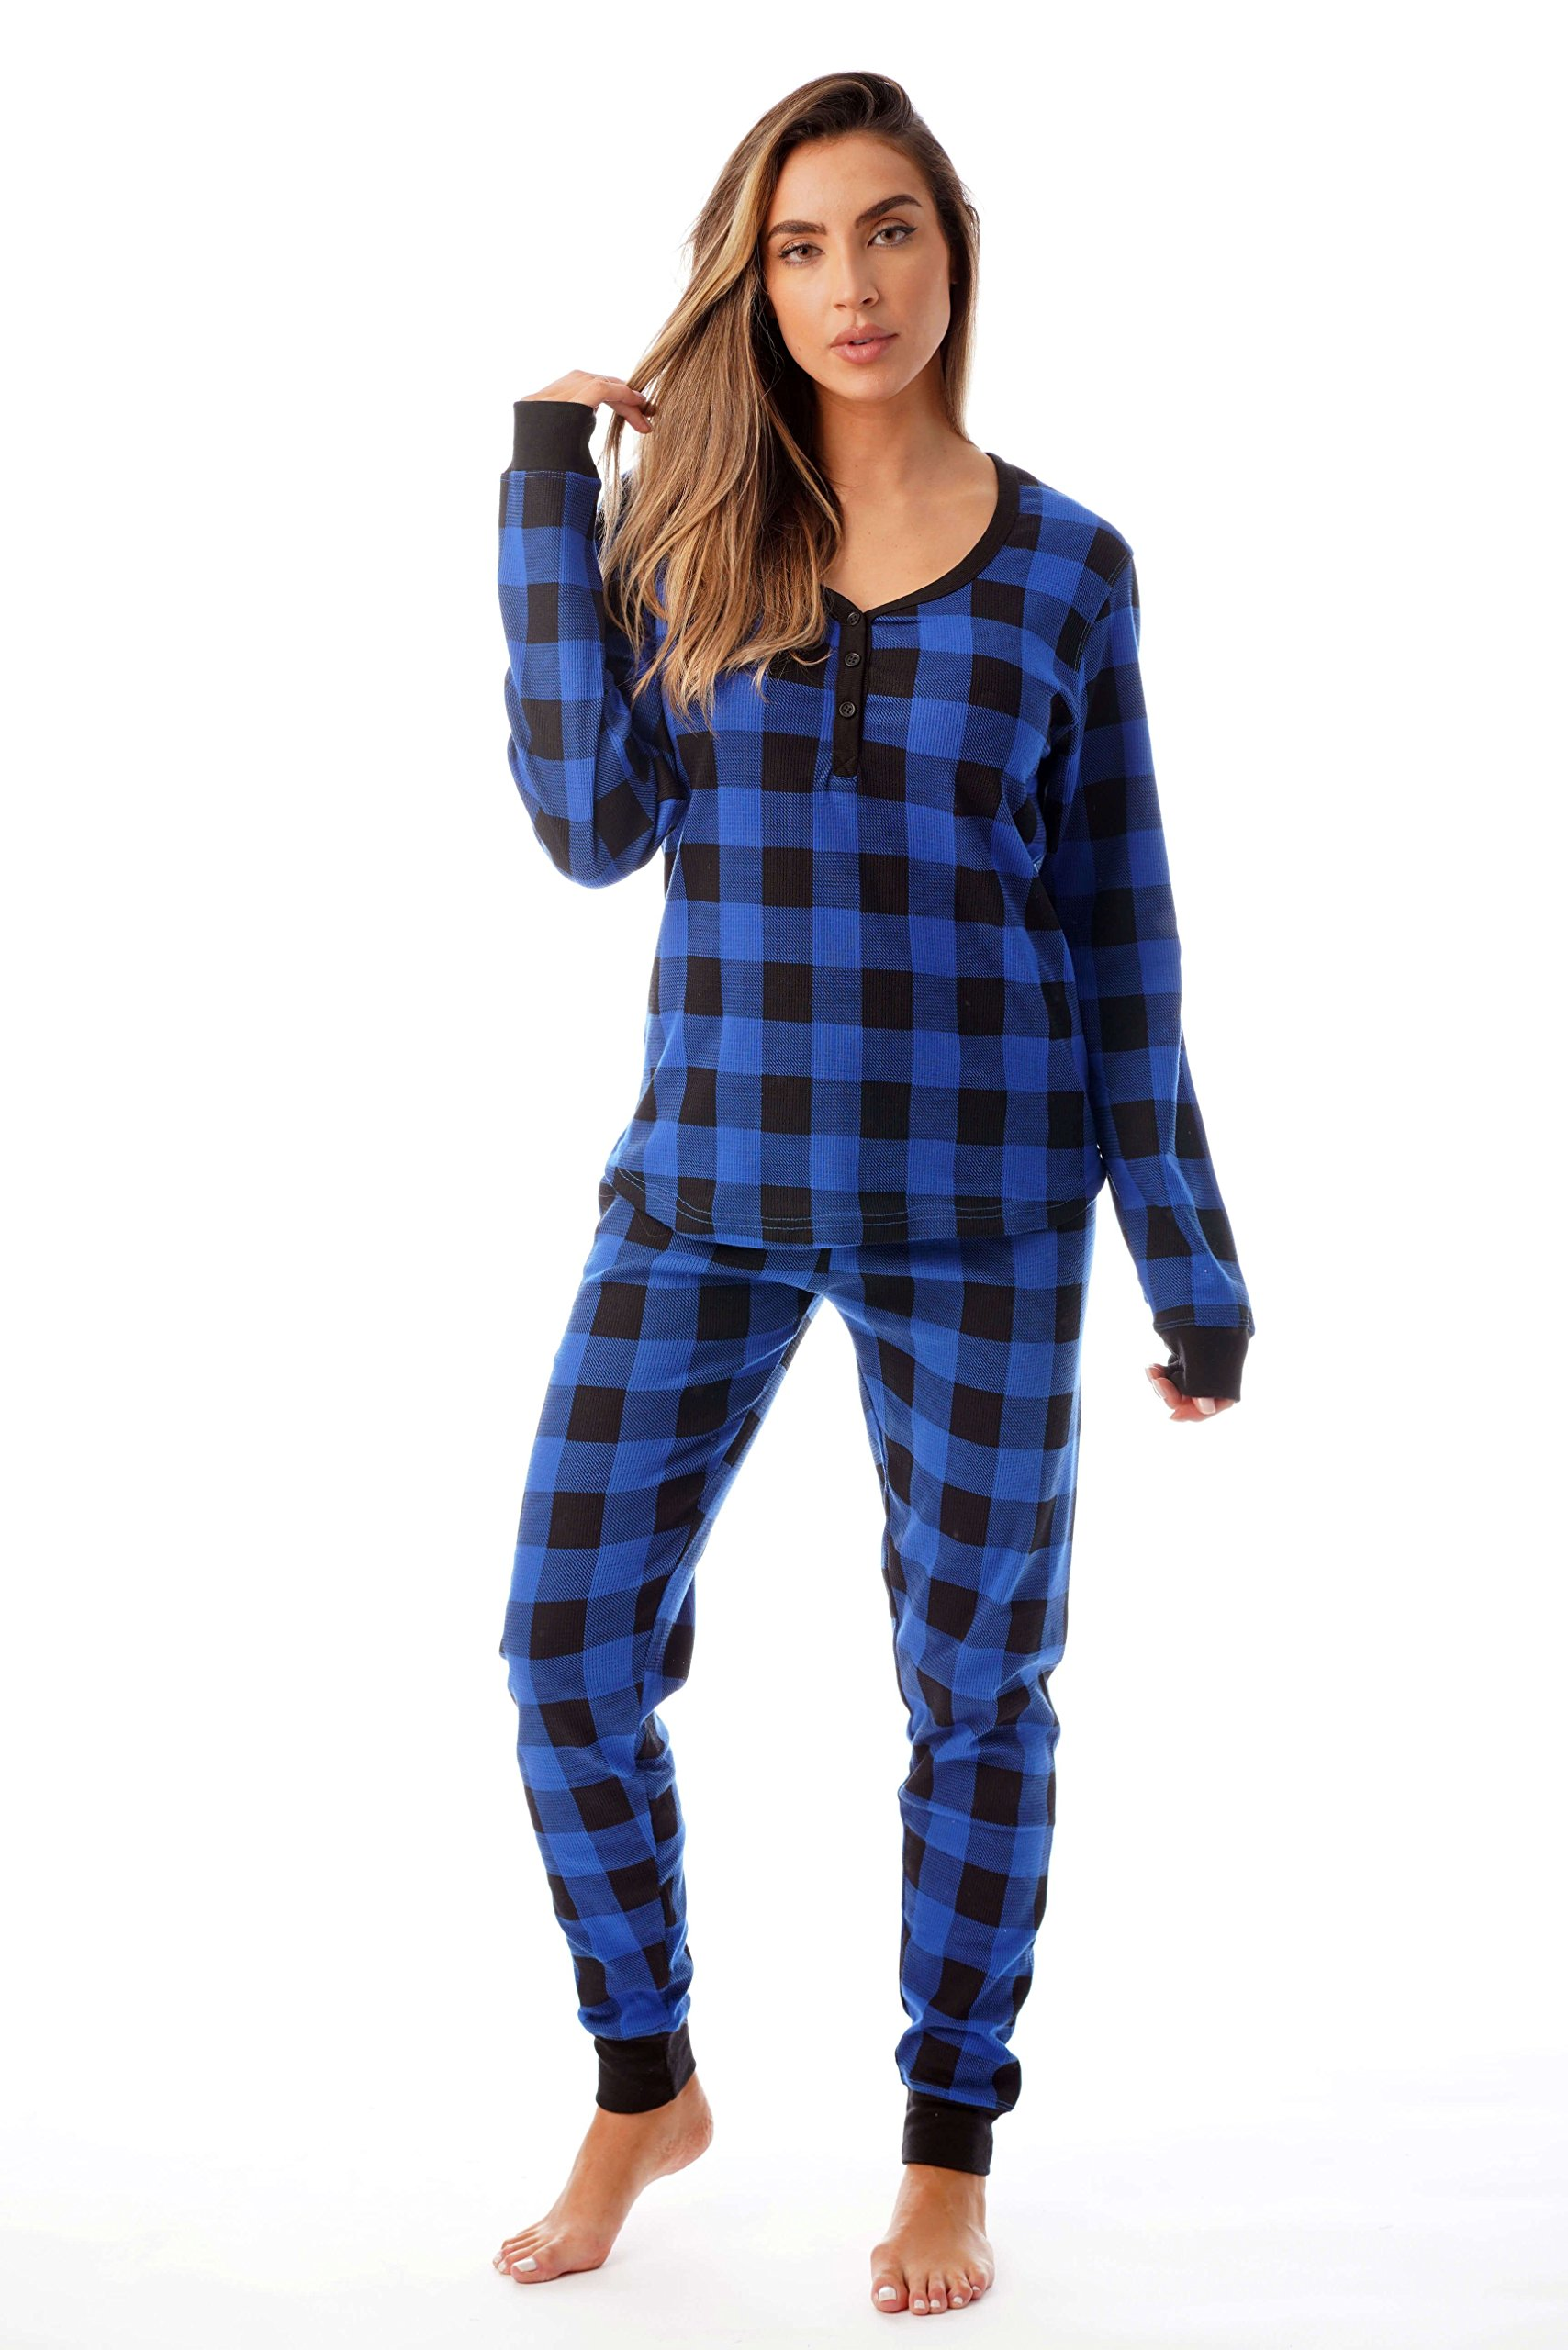 #followme Buffalo Plaid 2 Piece Base Layer Thermal Underwear Set for Women 6372-10195-NEW-ROY-XS by #followme